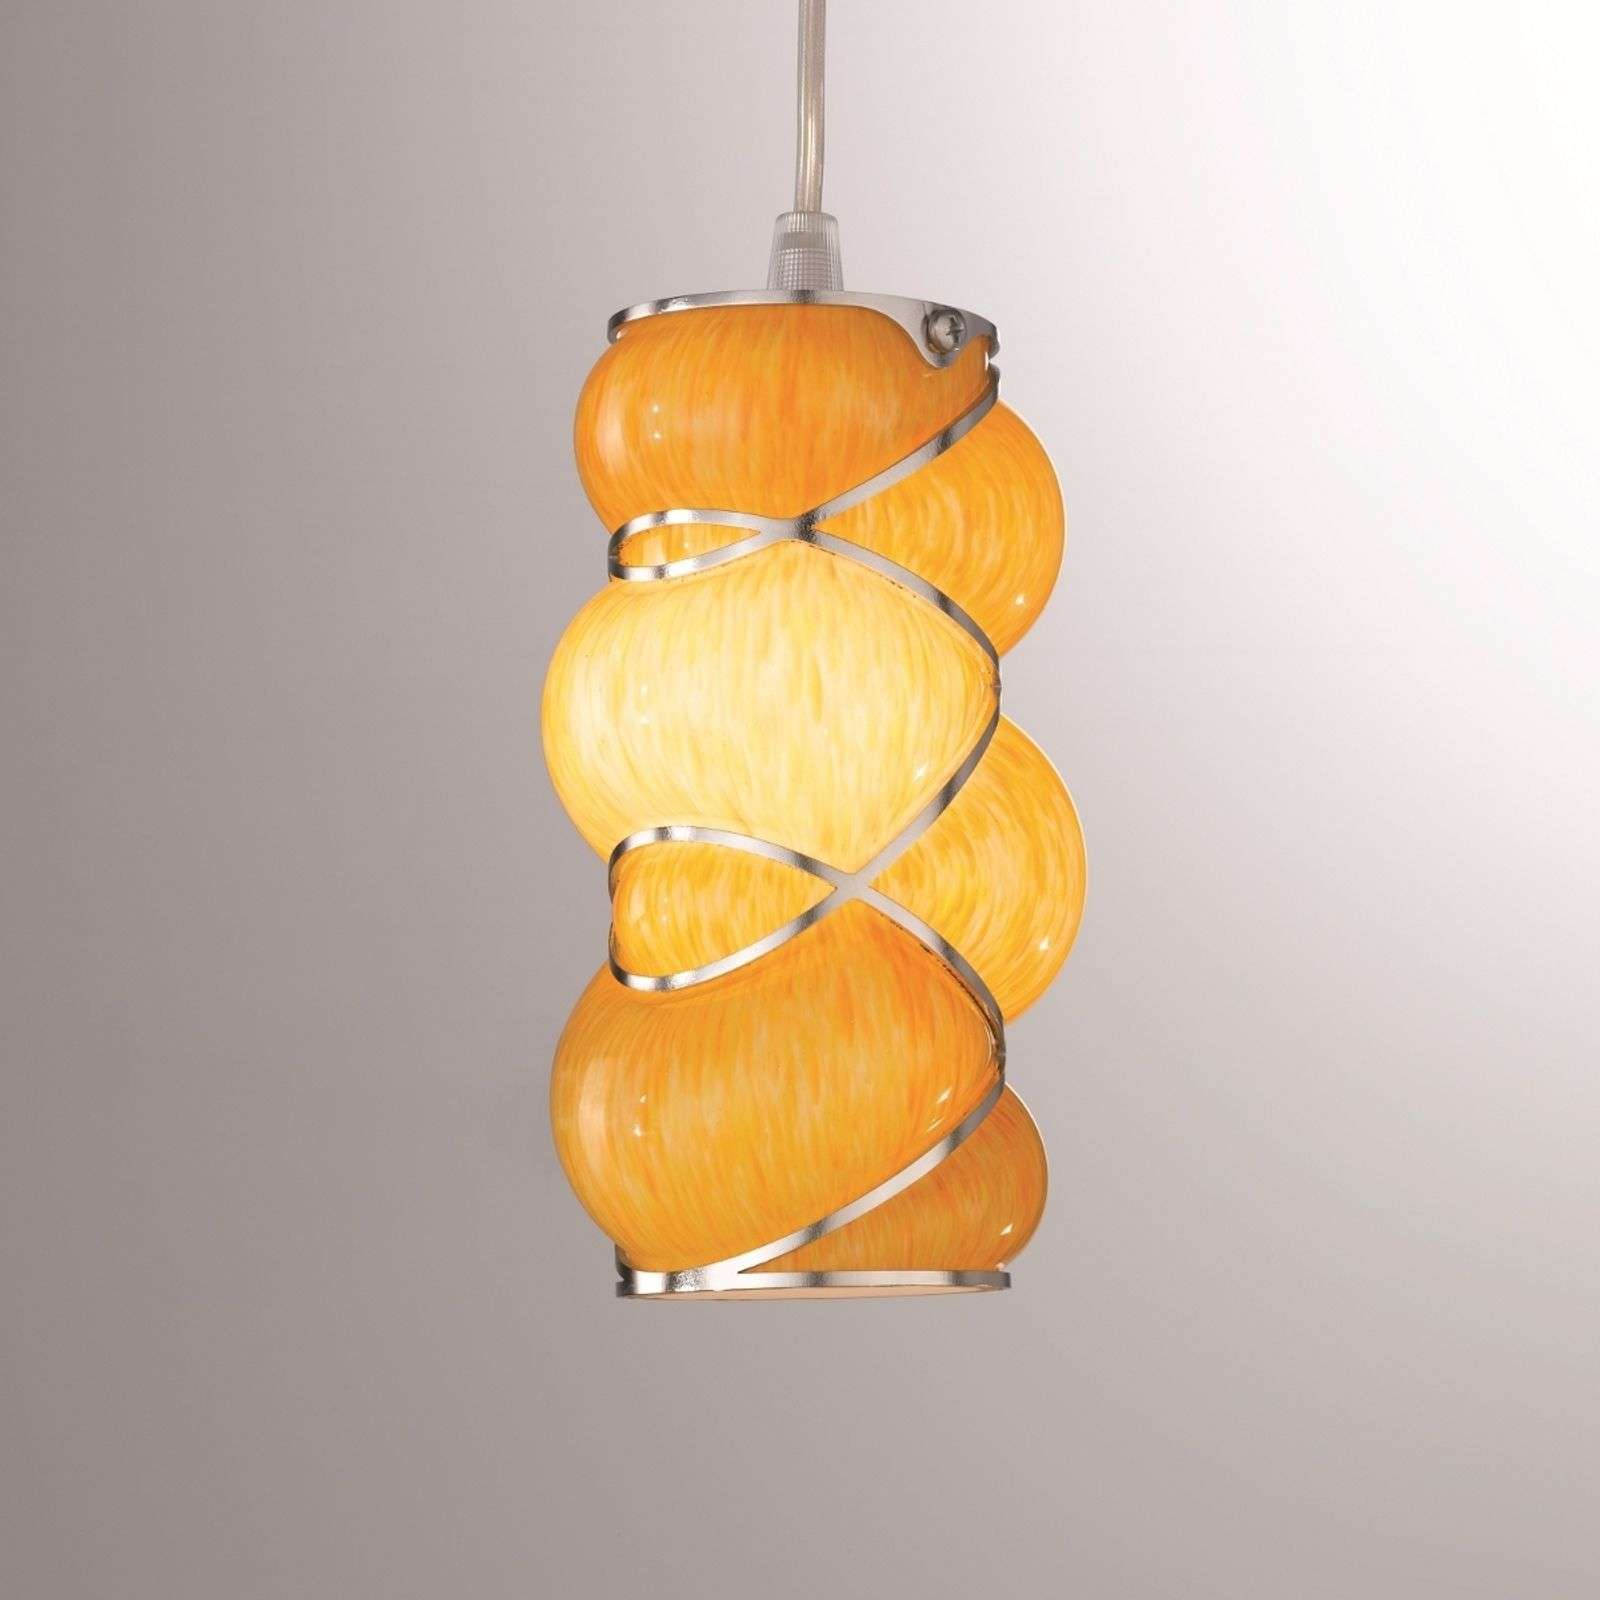 Suspension raffinée Orione orange